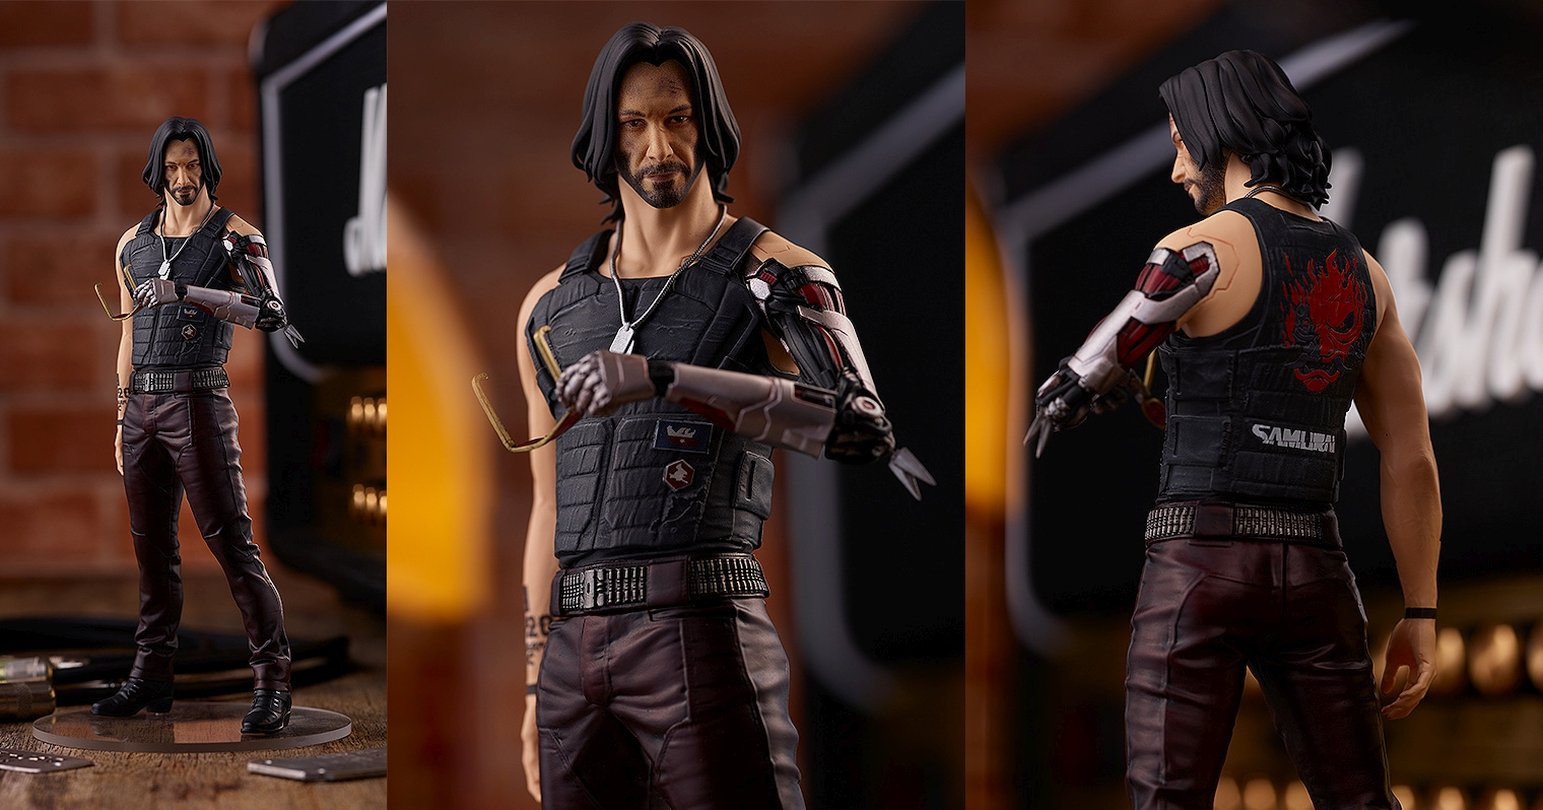 CD Projekt Red Announces Several CyberPunk 2077 Related Merchandise During TGS 2020